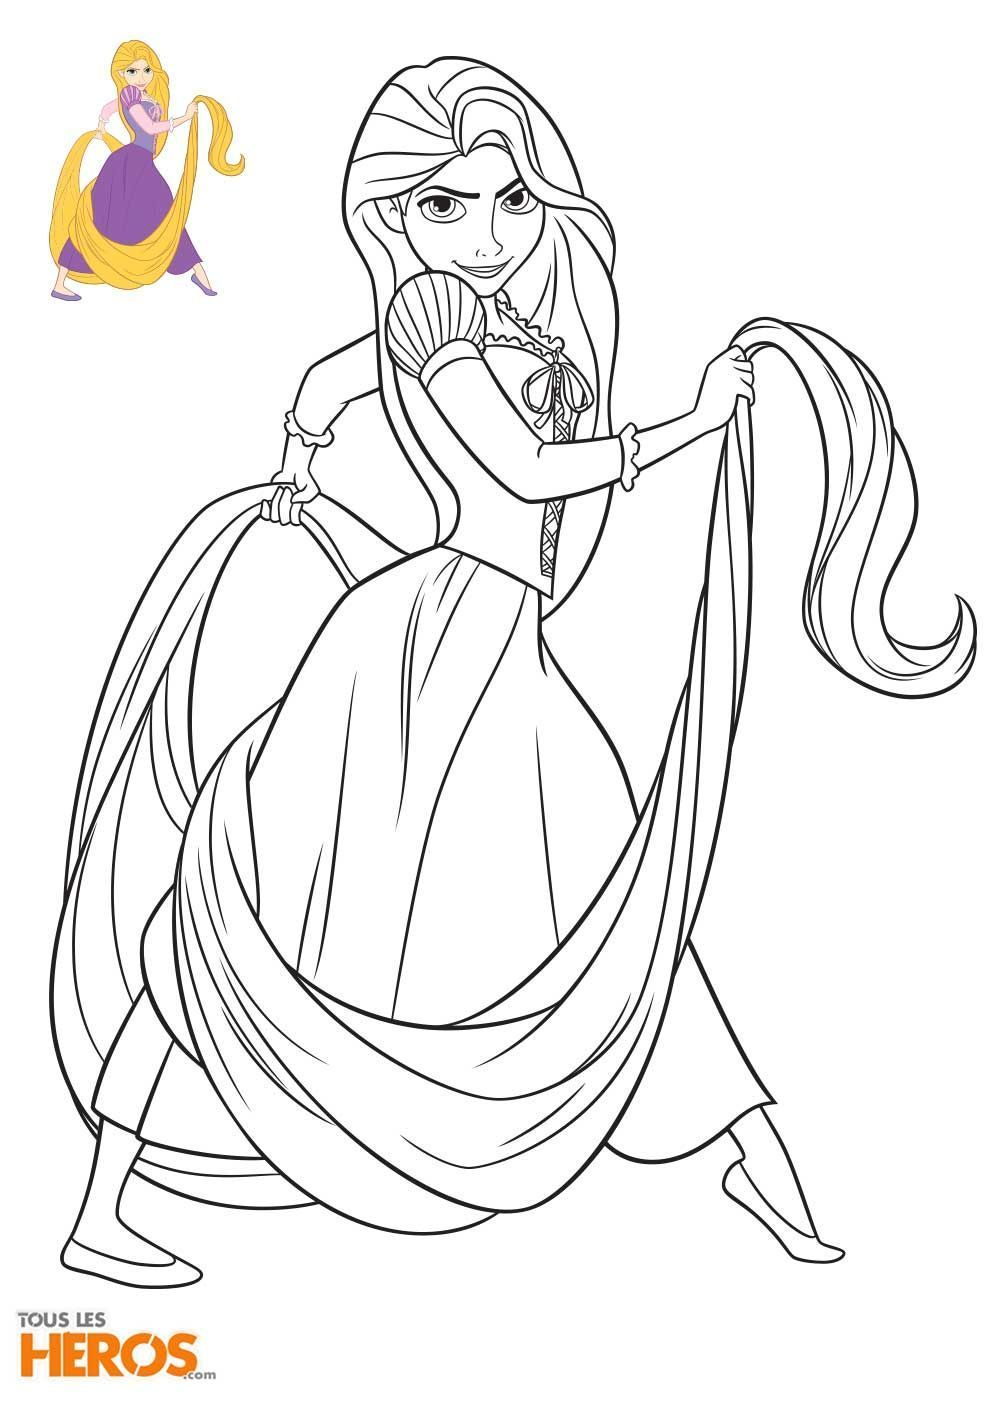 Coloriage Princesses Disney Raiponce | Princess coloring pages printables, Disney  princess drawings, Cinderella coloring pages